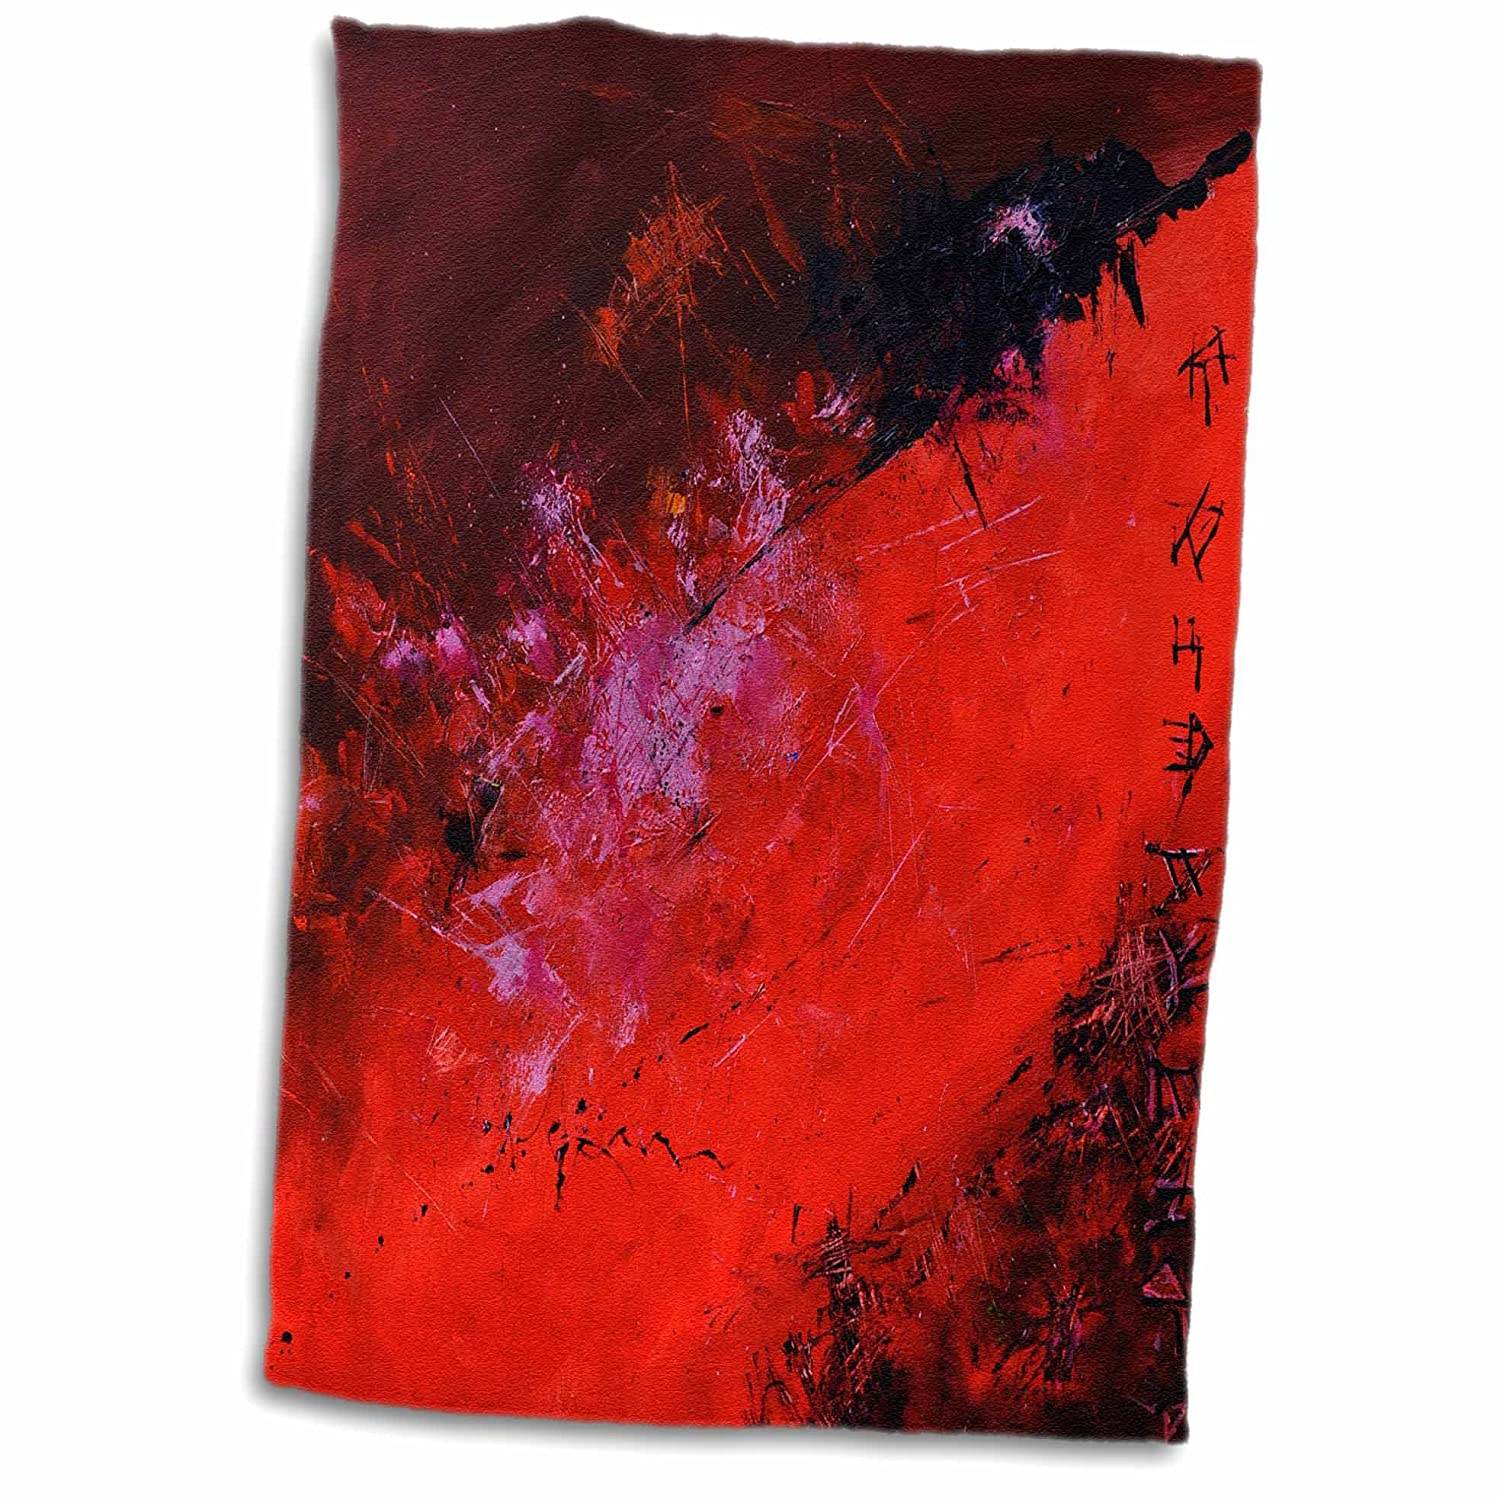 3D Rose red Abstract TWL_21118_1 Towel 15' x 22'